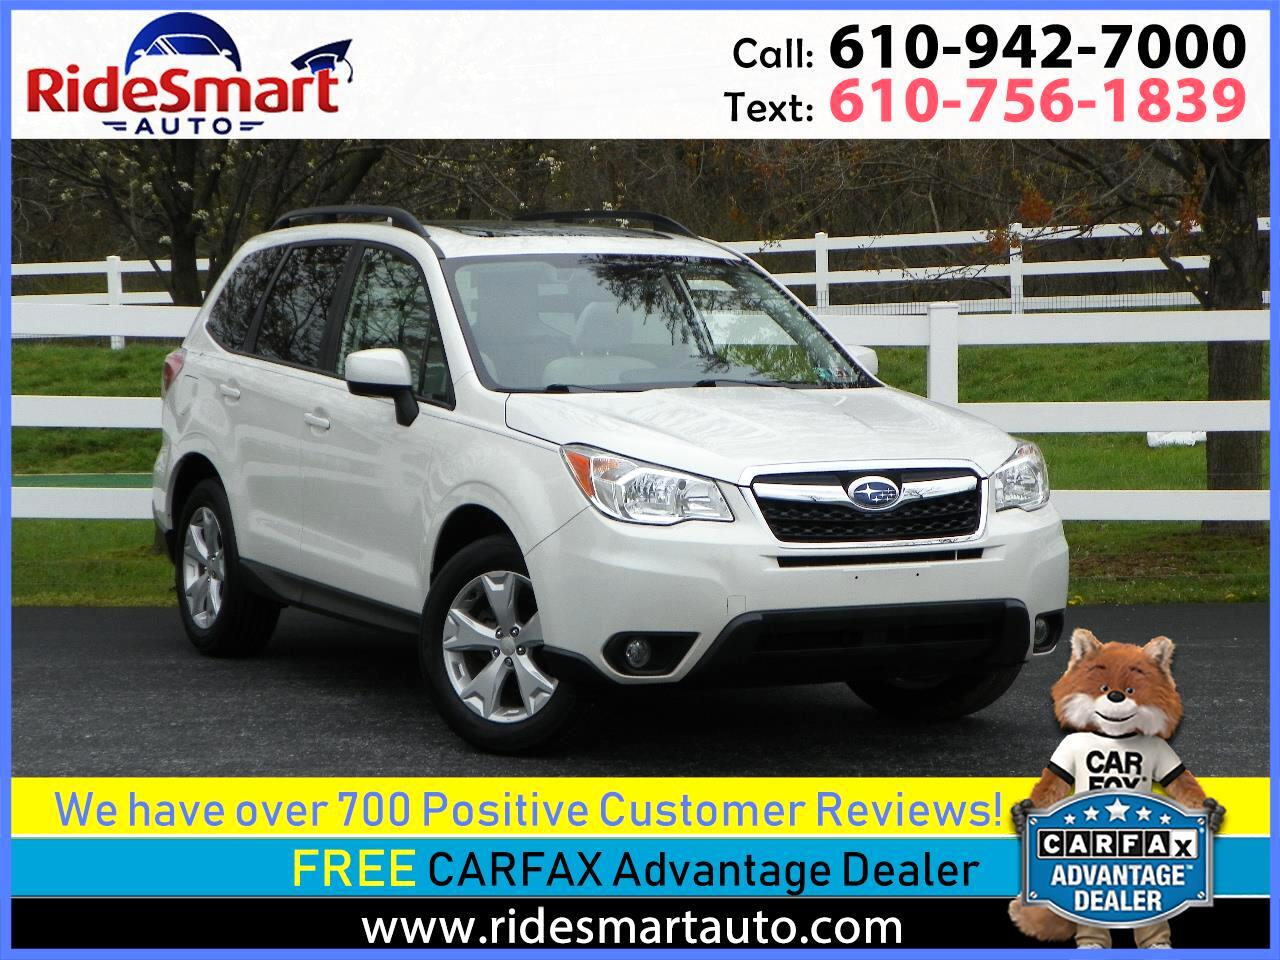 2016 Subaru Forester 2.5i Premium w/Pano Sunroof & Eyesight